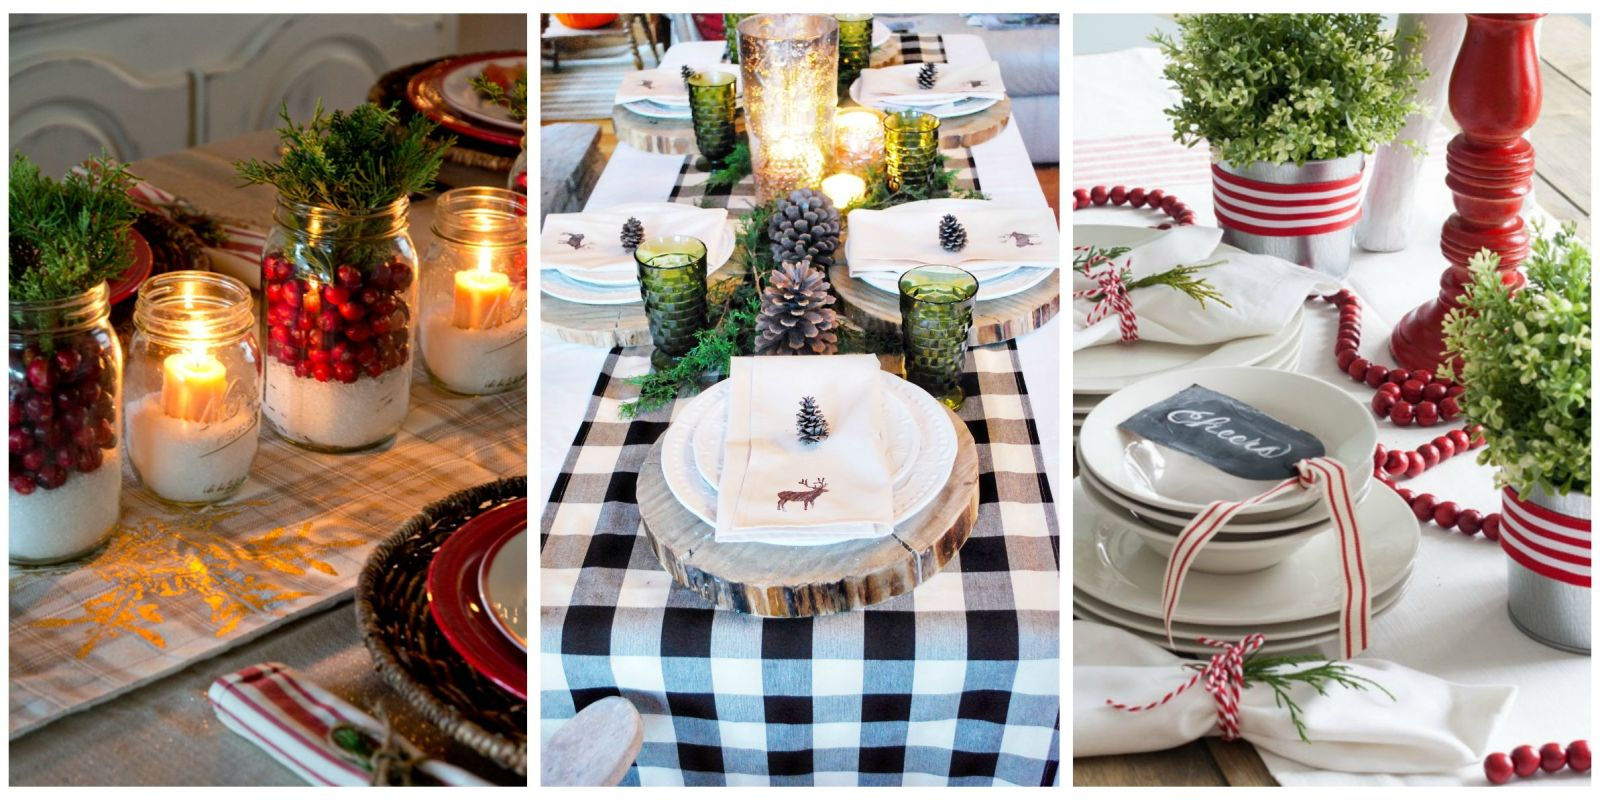 Country christmas table decoration ideas - 32 Christmas Table Decorations Centerpieces Ideas For Holiday Table Decor Woman S Day